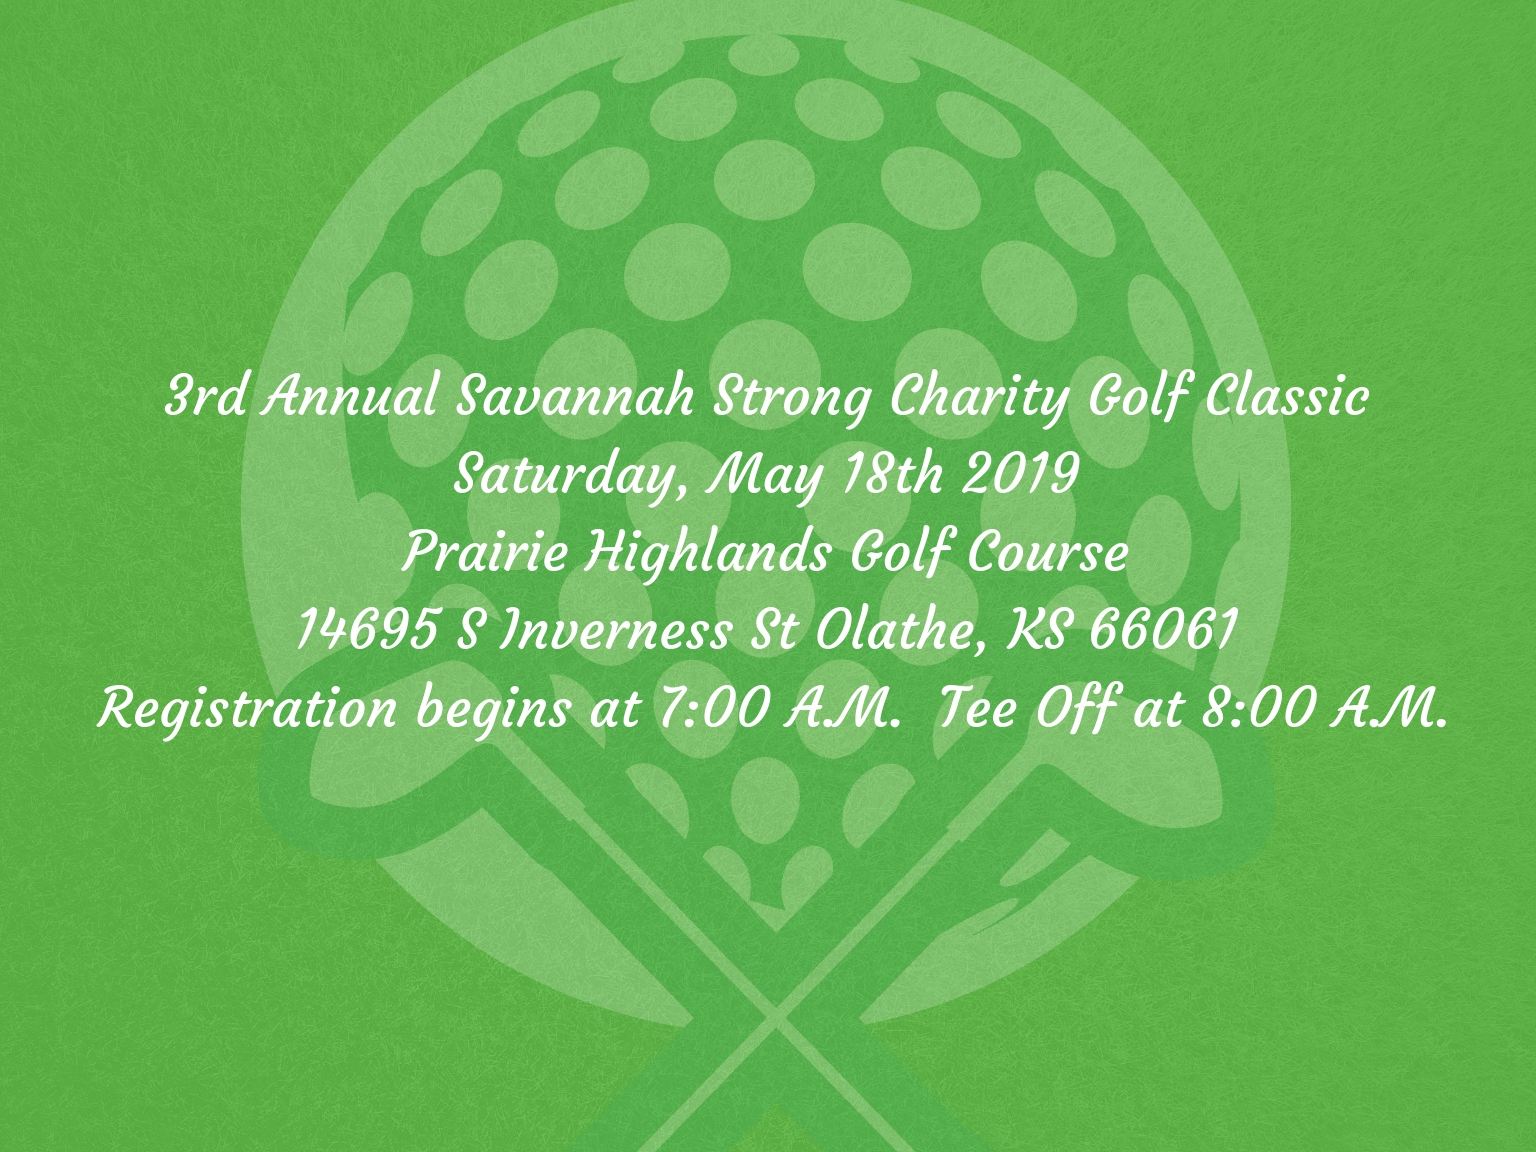 3rd Annual Savannah Strong Charity Golf Classic